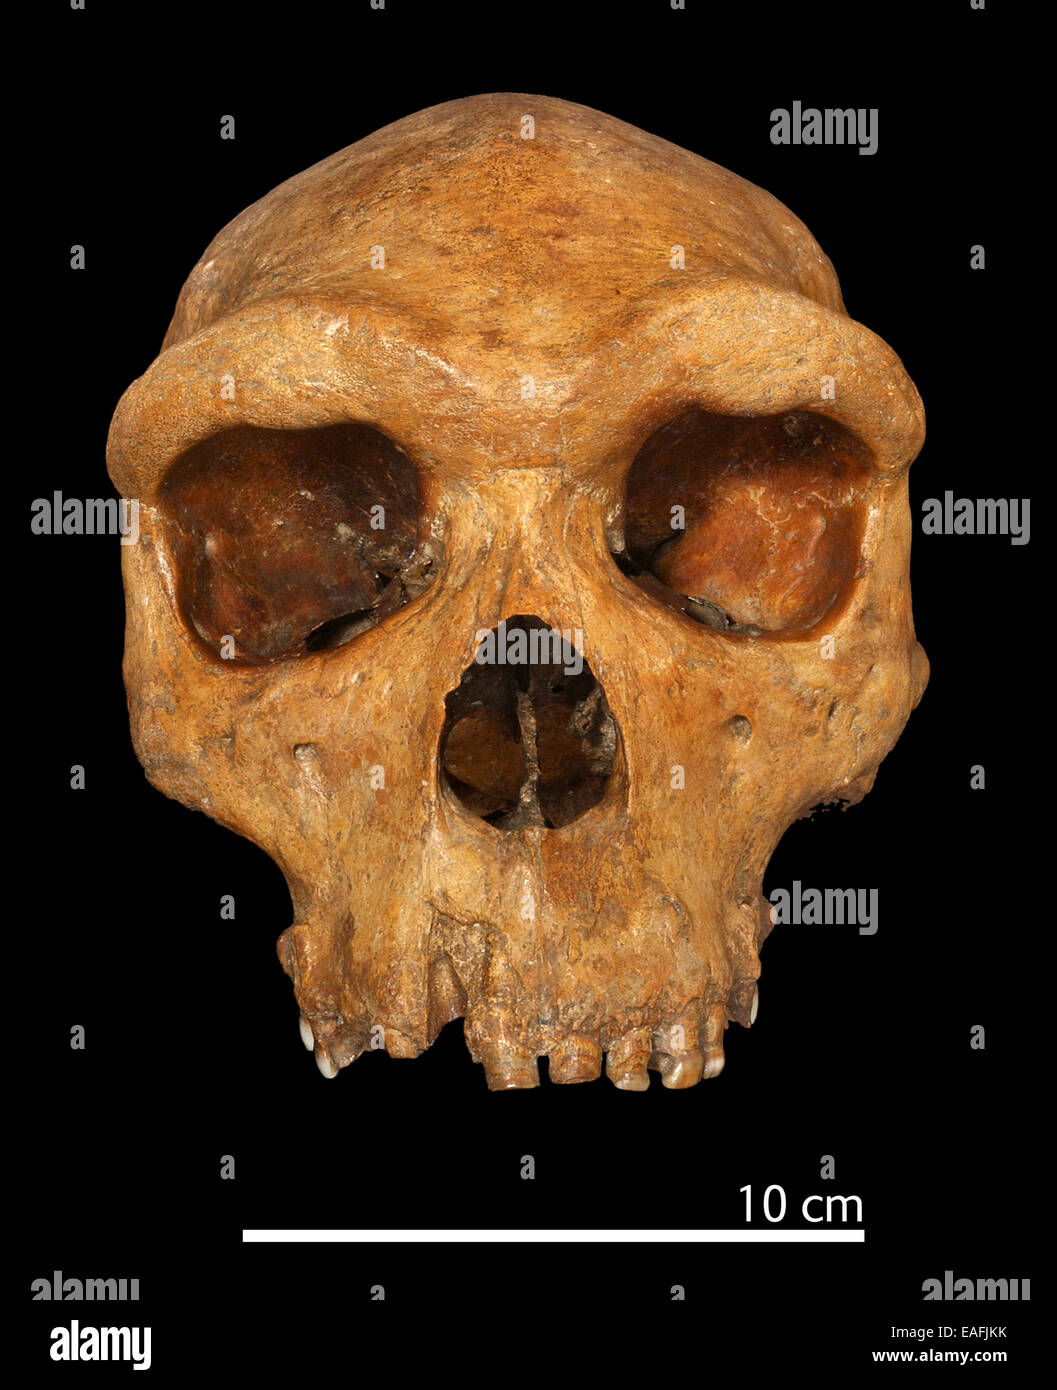 an evidence and interpretation in paleoanthropology Evidence of hominid activity between 8 and 25 million it should be noted that this interpretation is not agreed upon by all in paleoanthropology, us.